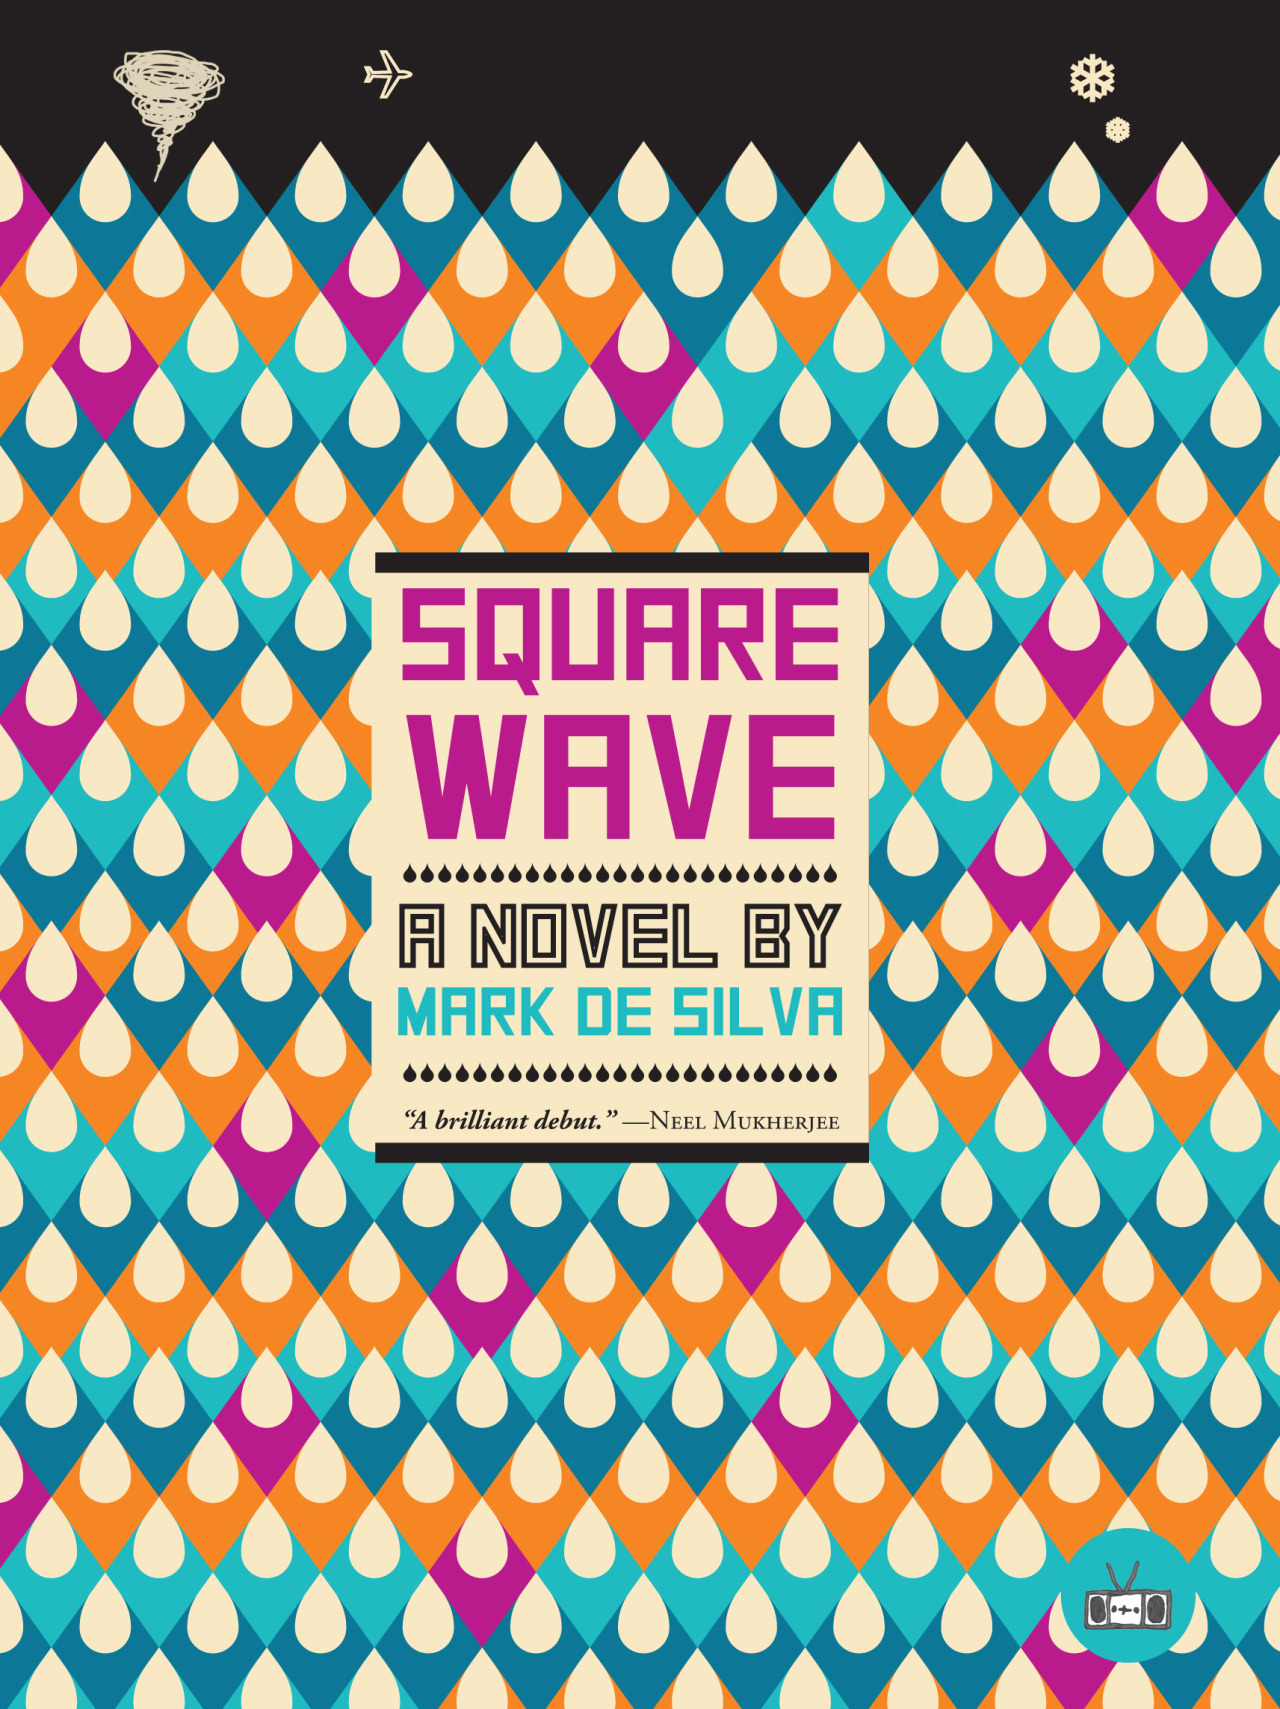 Book Review) Square Wave by Mark De Silva